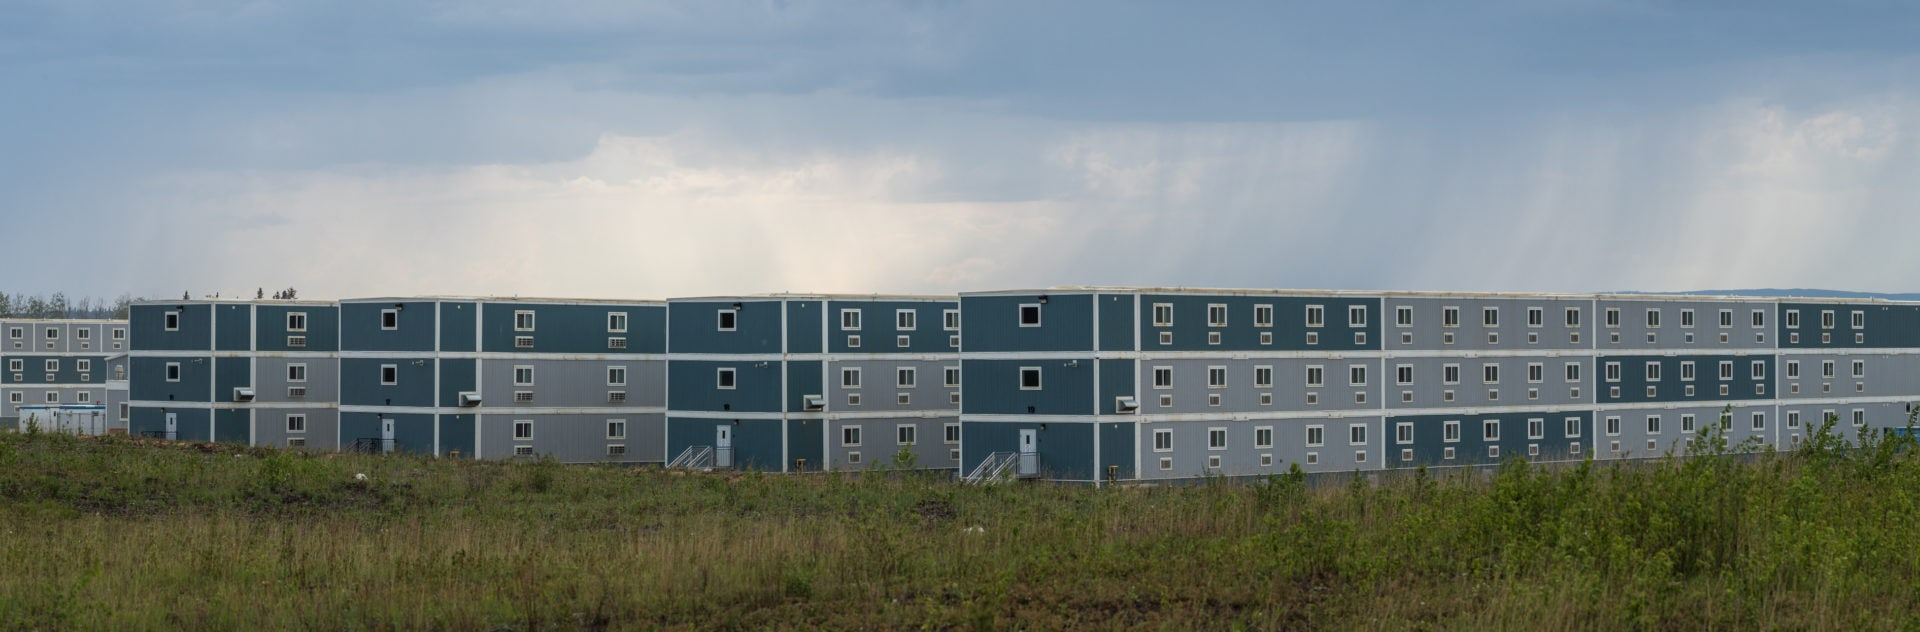 Worker housing in Alberta's oilsands.